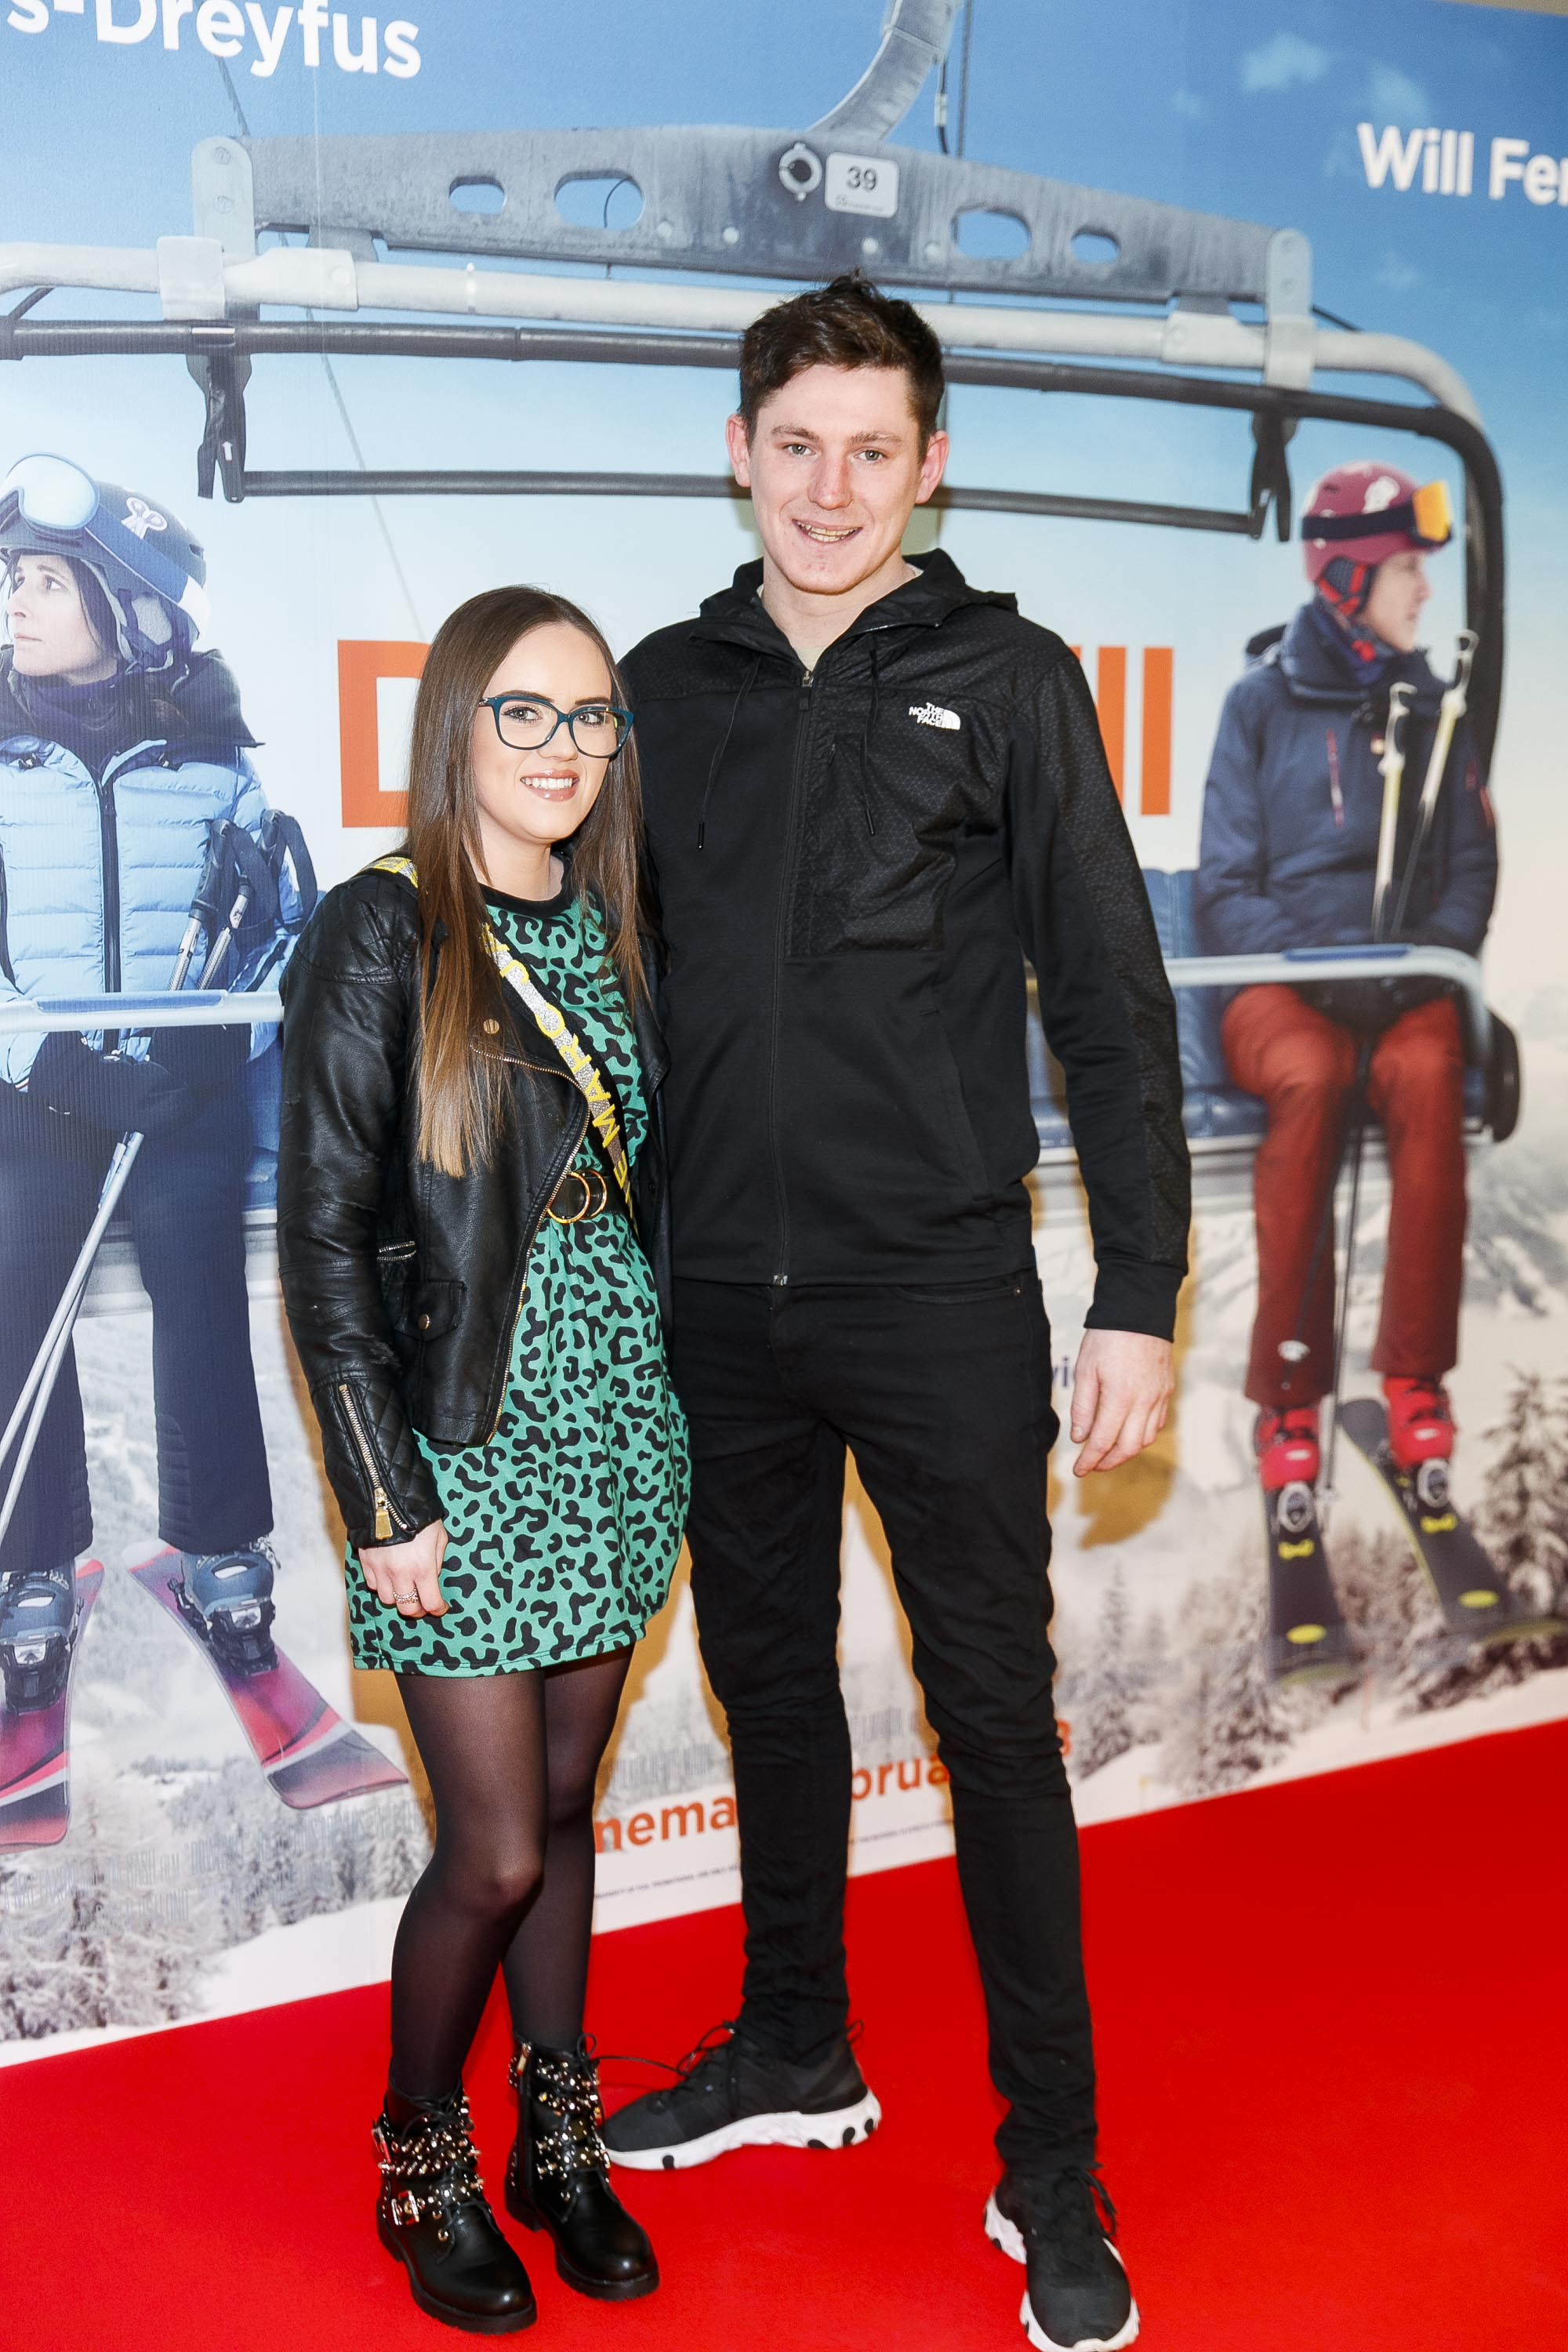 Megan Finlay and Harry McCabe pictured at a special preview screening of Downhill at the Light House Cinema, Dublin. Picture: Andres Poveda.